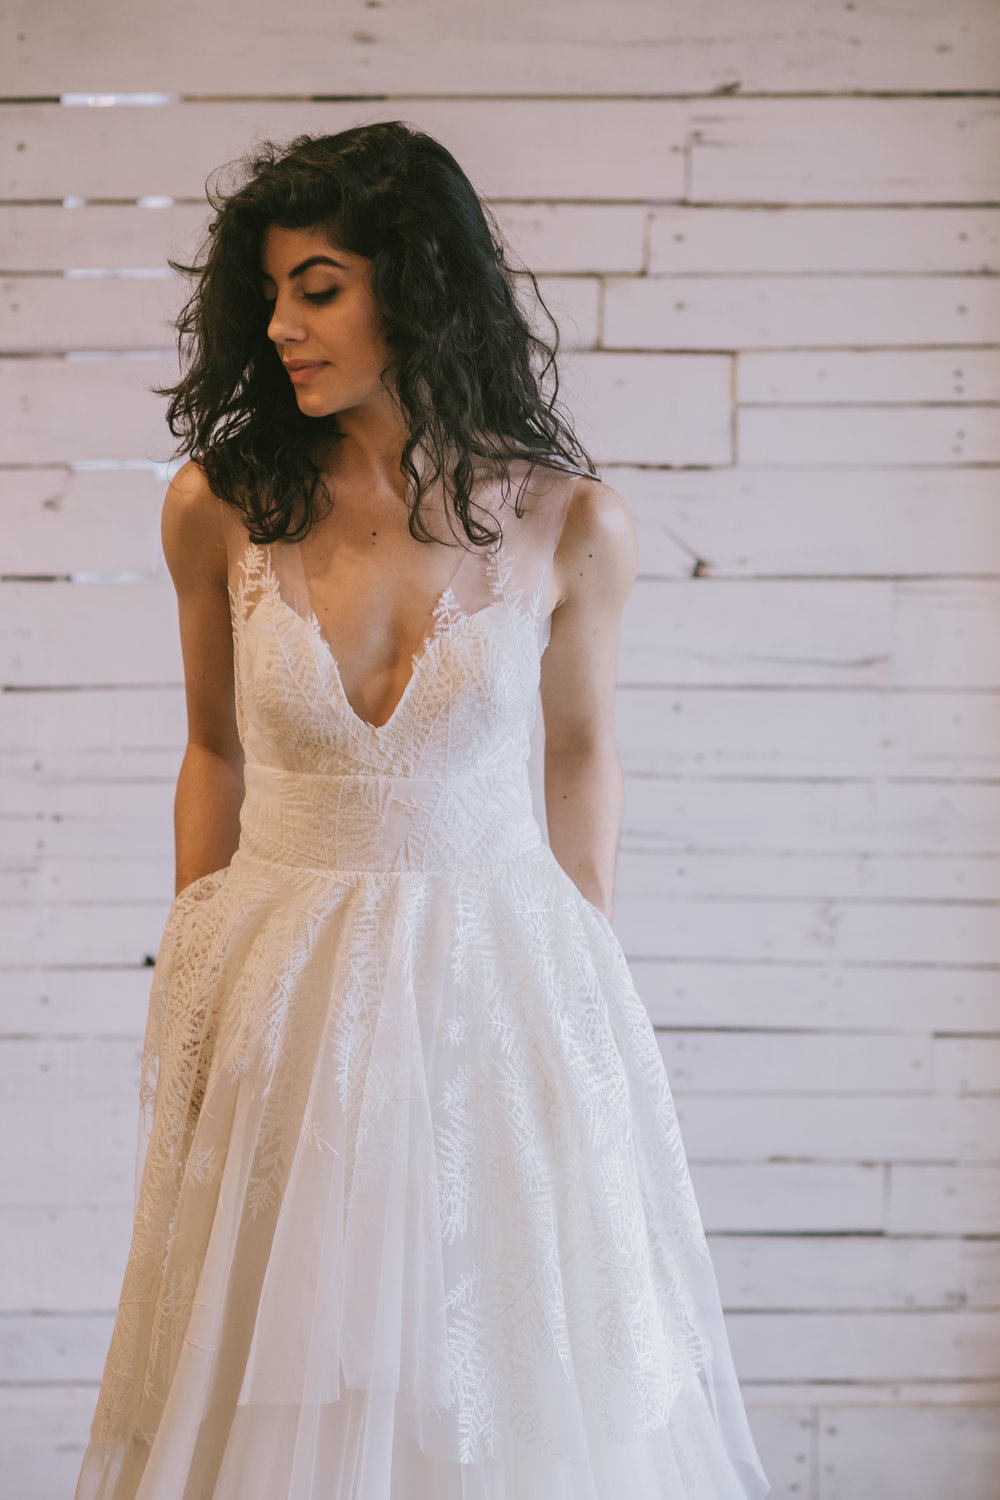 ivory-and-beau-bridal-boutique-loulette-bridal-trunk-show-bohemian-wedding-gowns-boho-wedding-dresses-savannah-boho-wedding-2.JPG